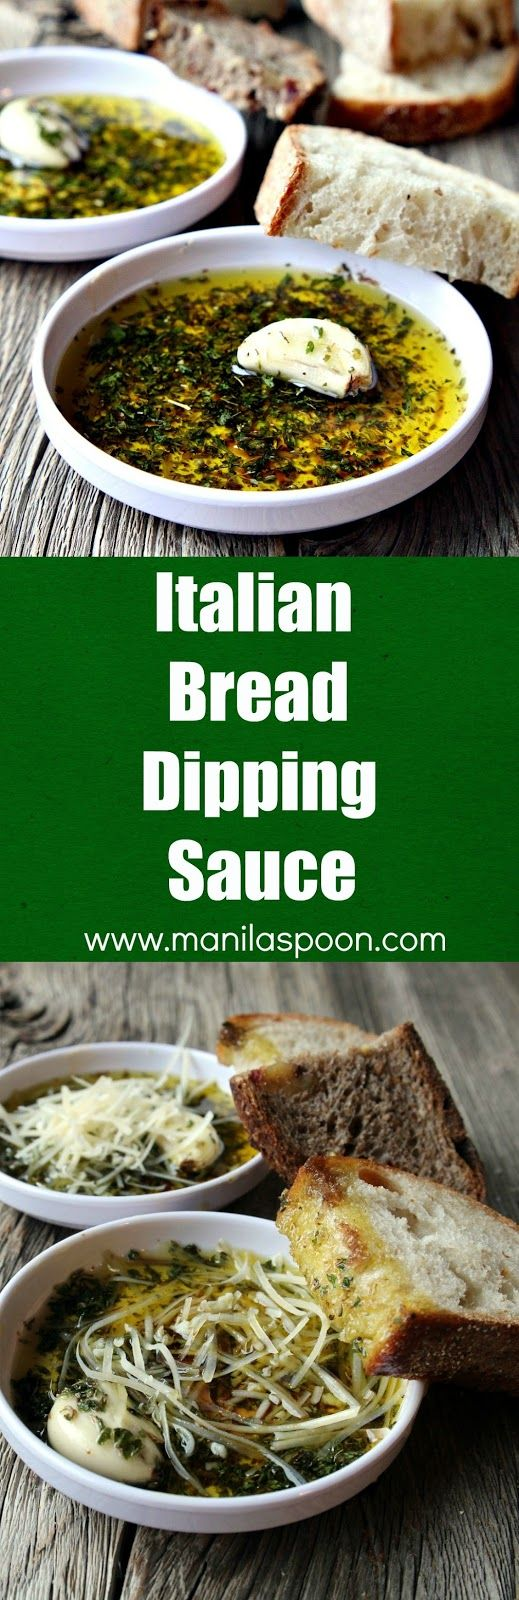 Restaurant-style sauce with Italian herbs and balsamic vinegar